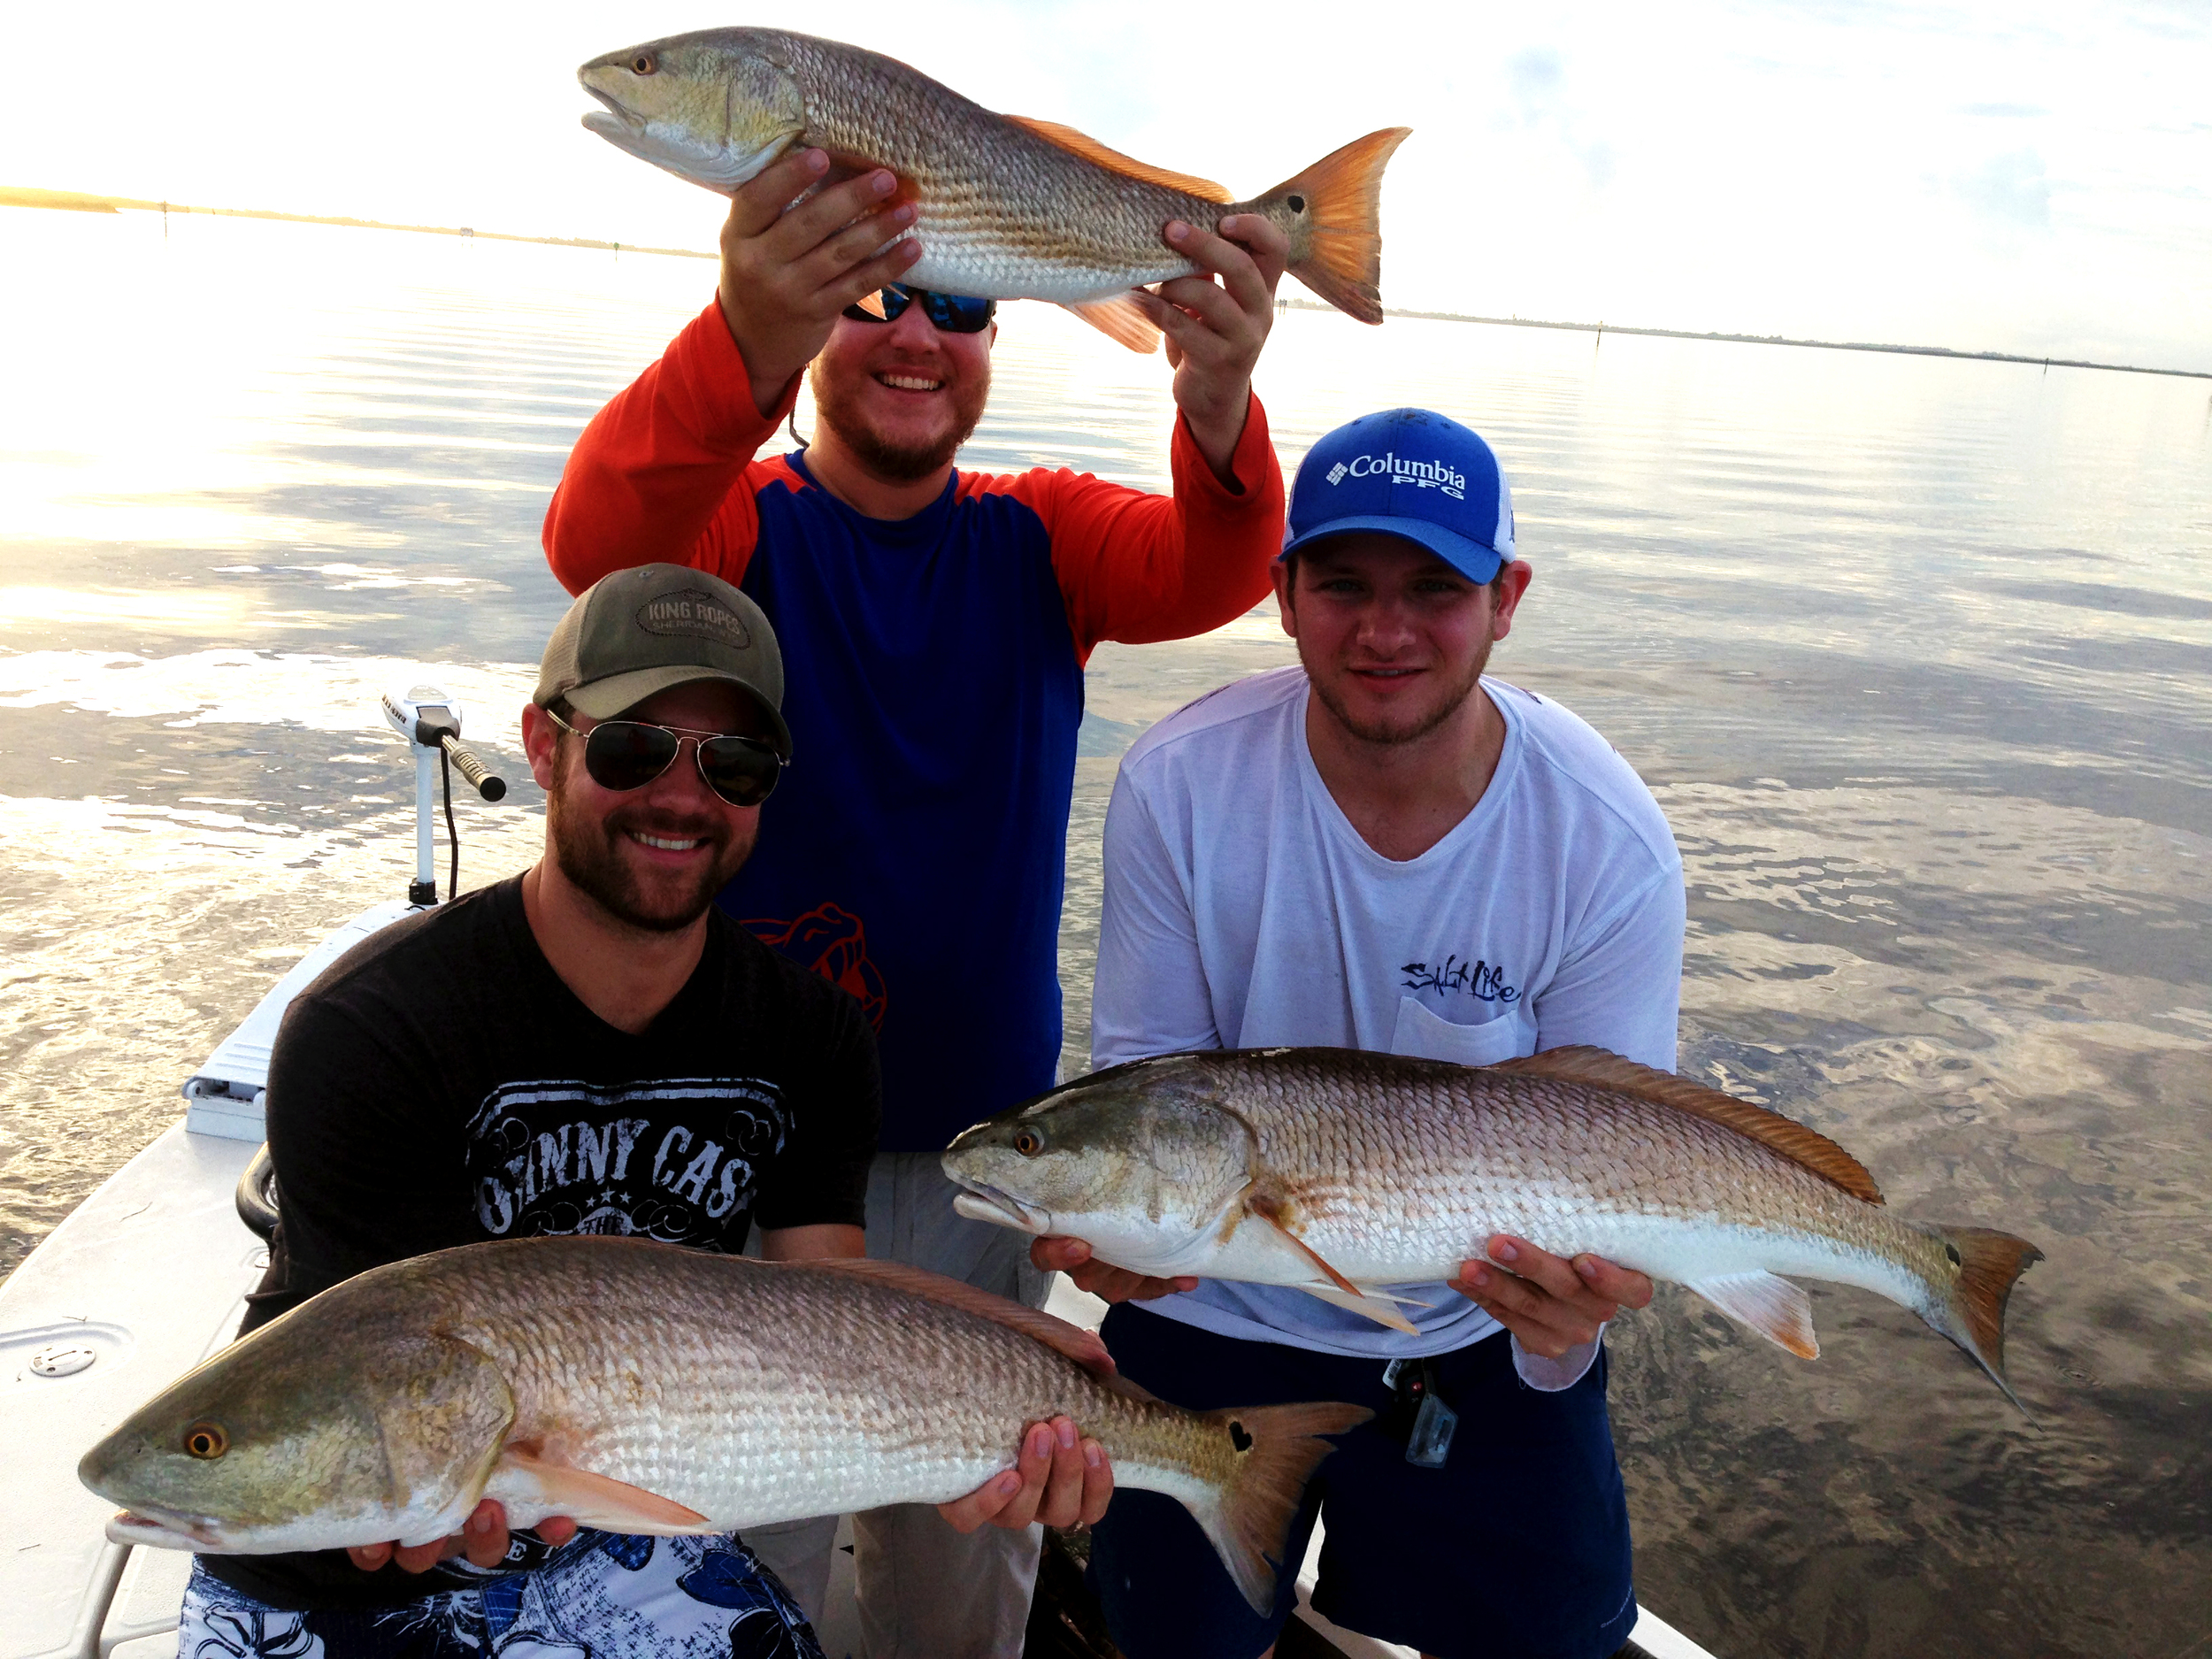 Barry and friends on their Get Local Fishing Charter -  Click here to book a fishing trip